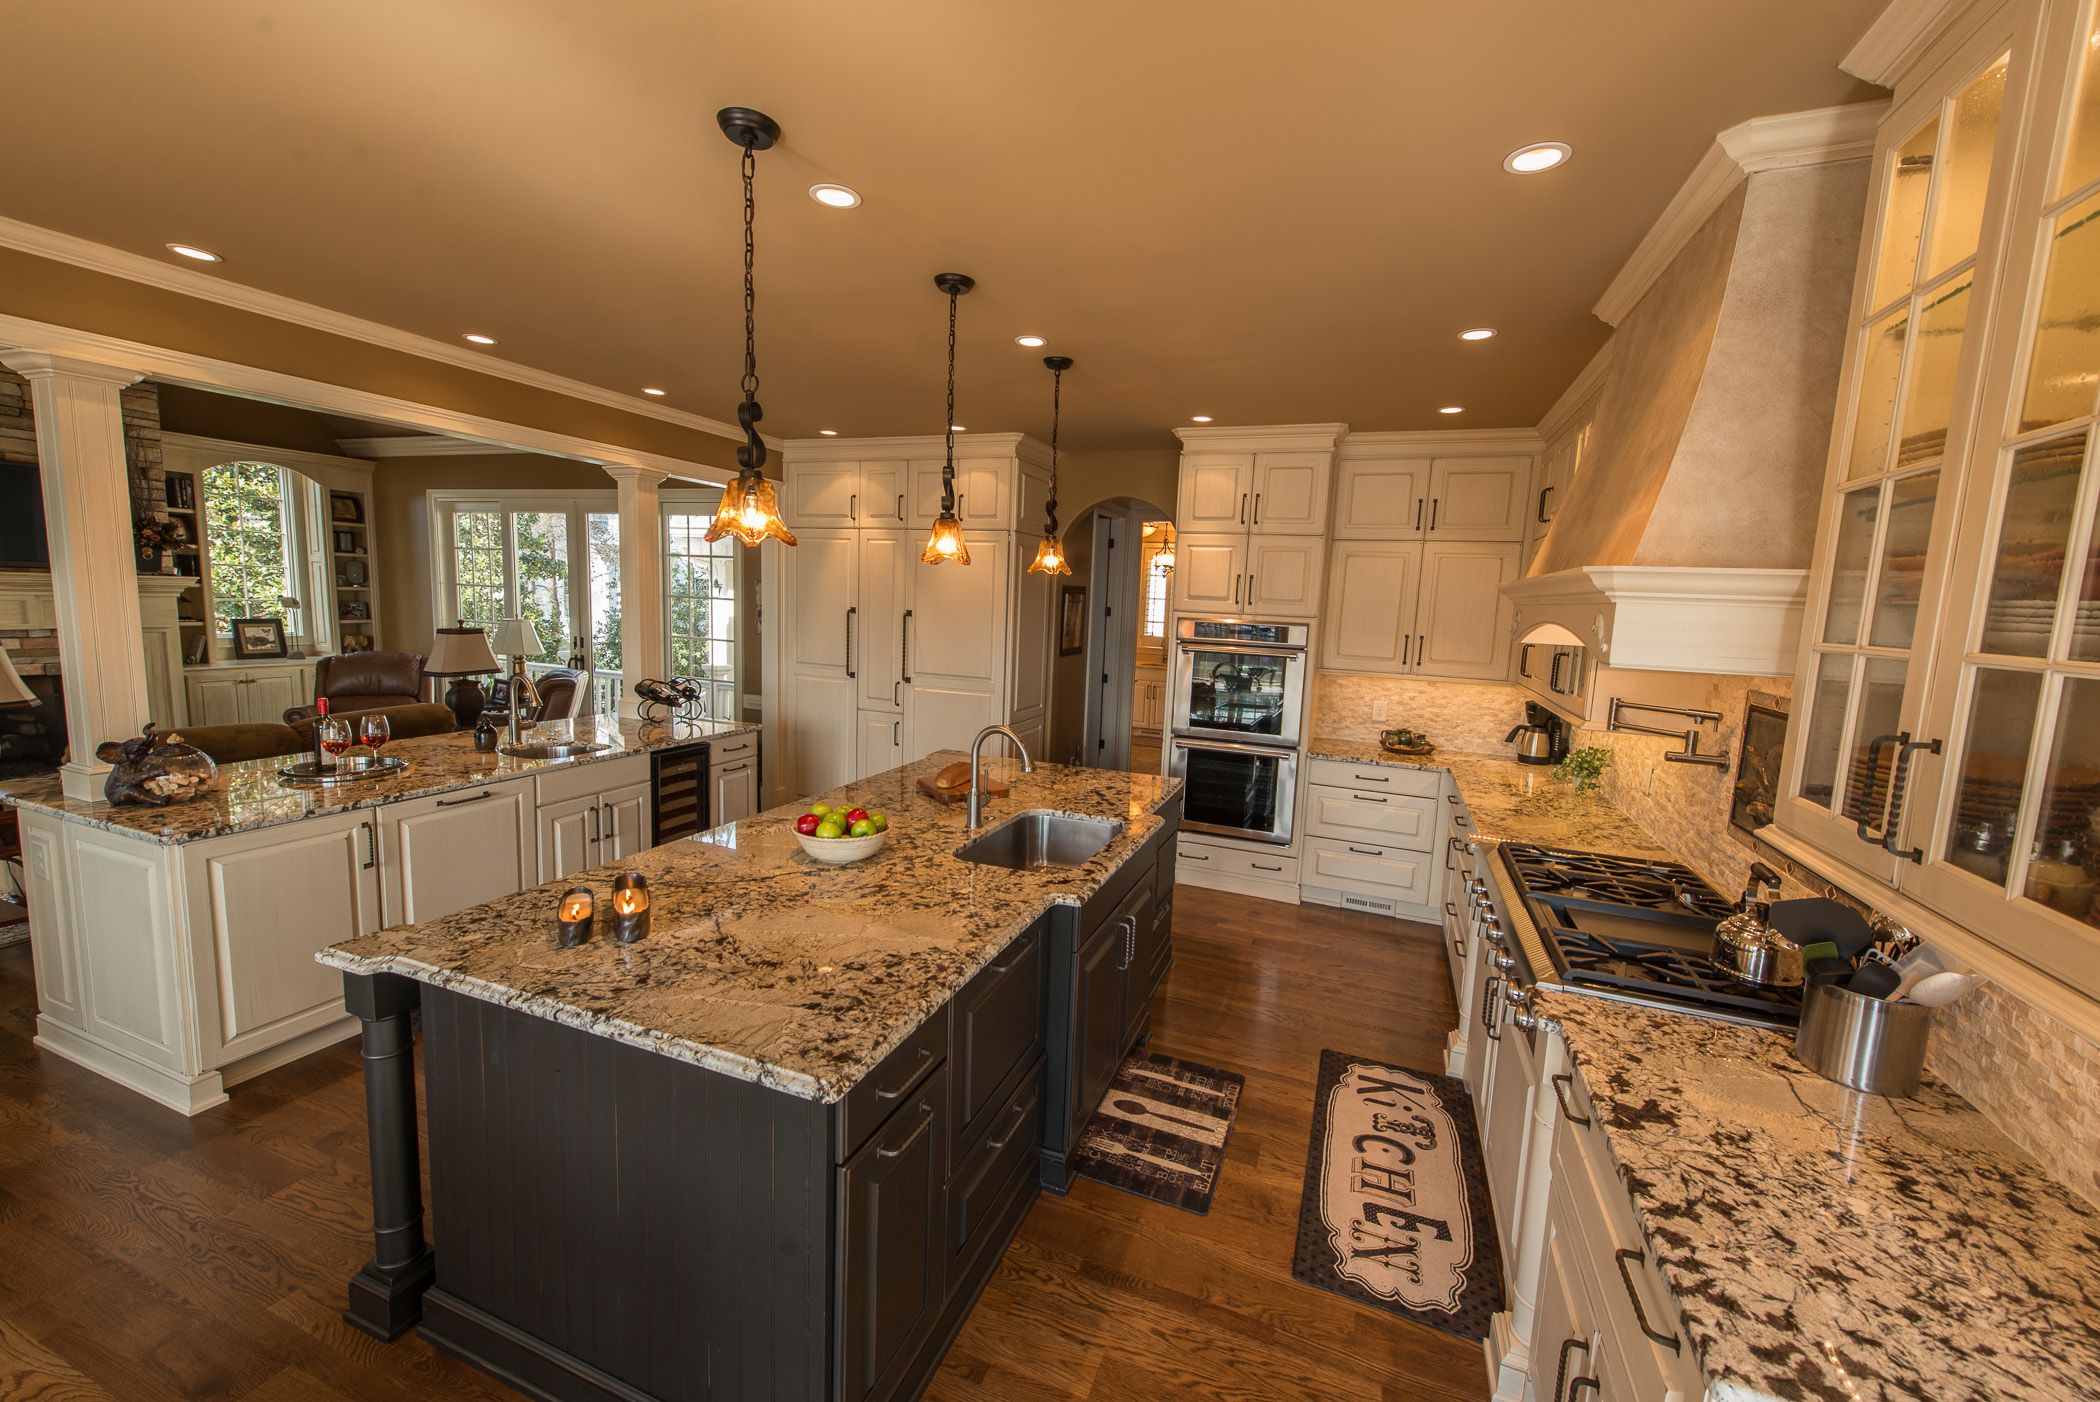 designing a kitchen island in alpharetta roswell milton cheryl this kitchen has 2 islands that compliment the rest of the kitchen the island with